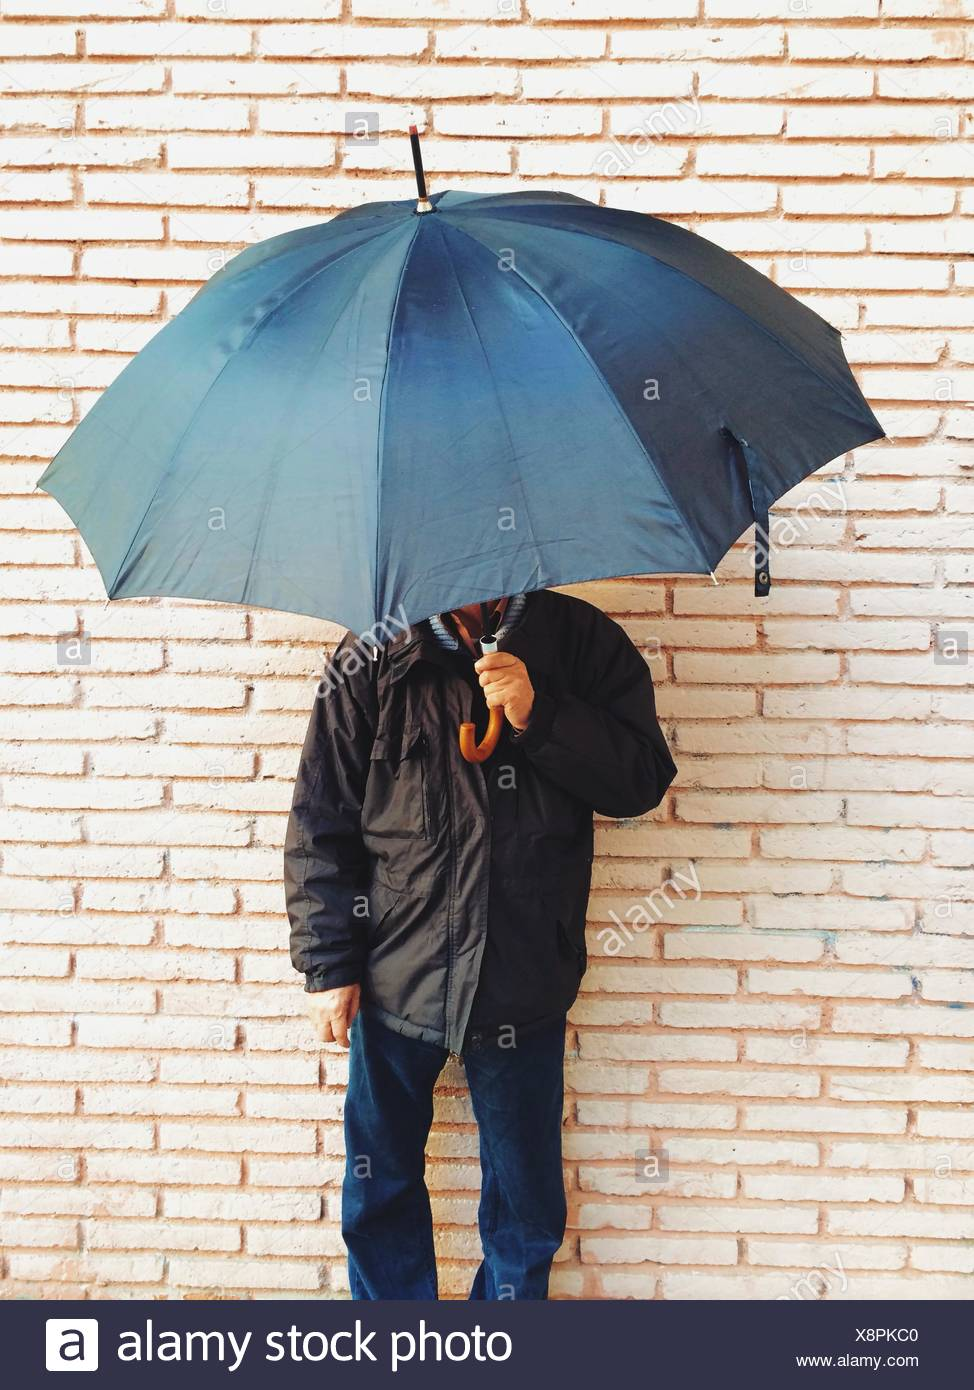 Mature Man Holding Umbrella Against Brick Wall - Stock Image